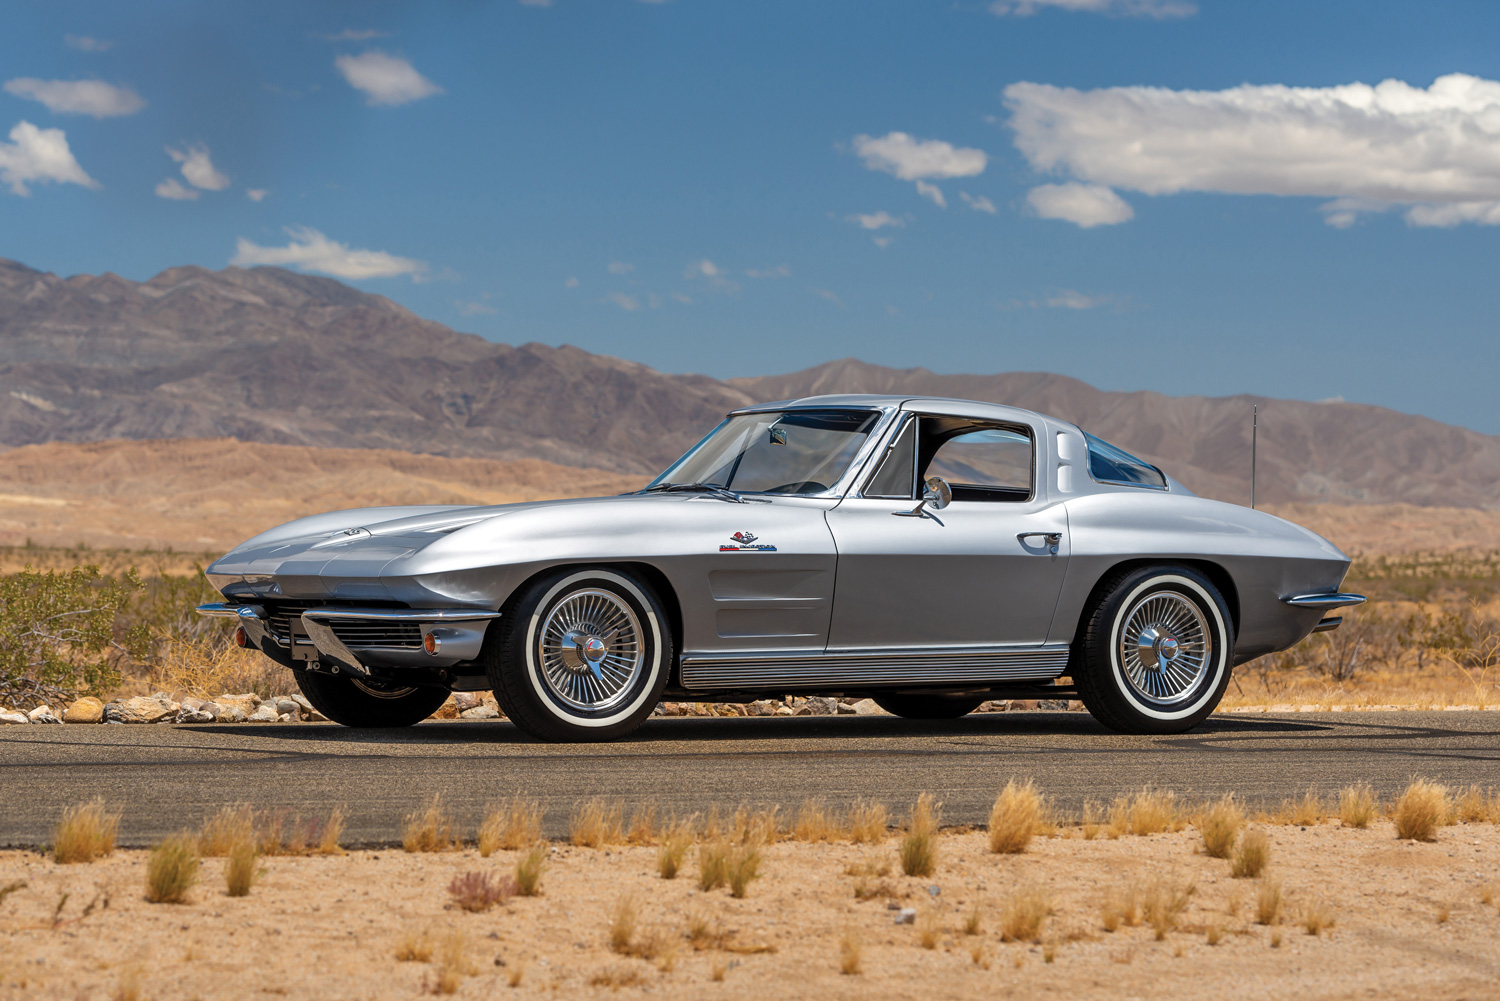 1963 Chevrolet Corvette Sting Ray 'Fuel Injected' Split-Window Coupe